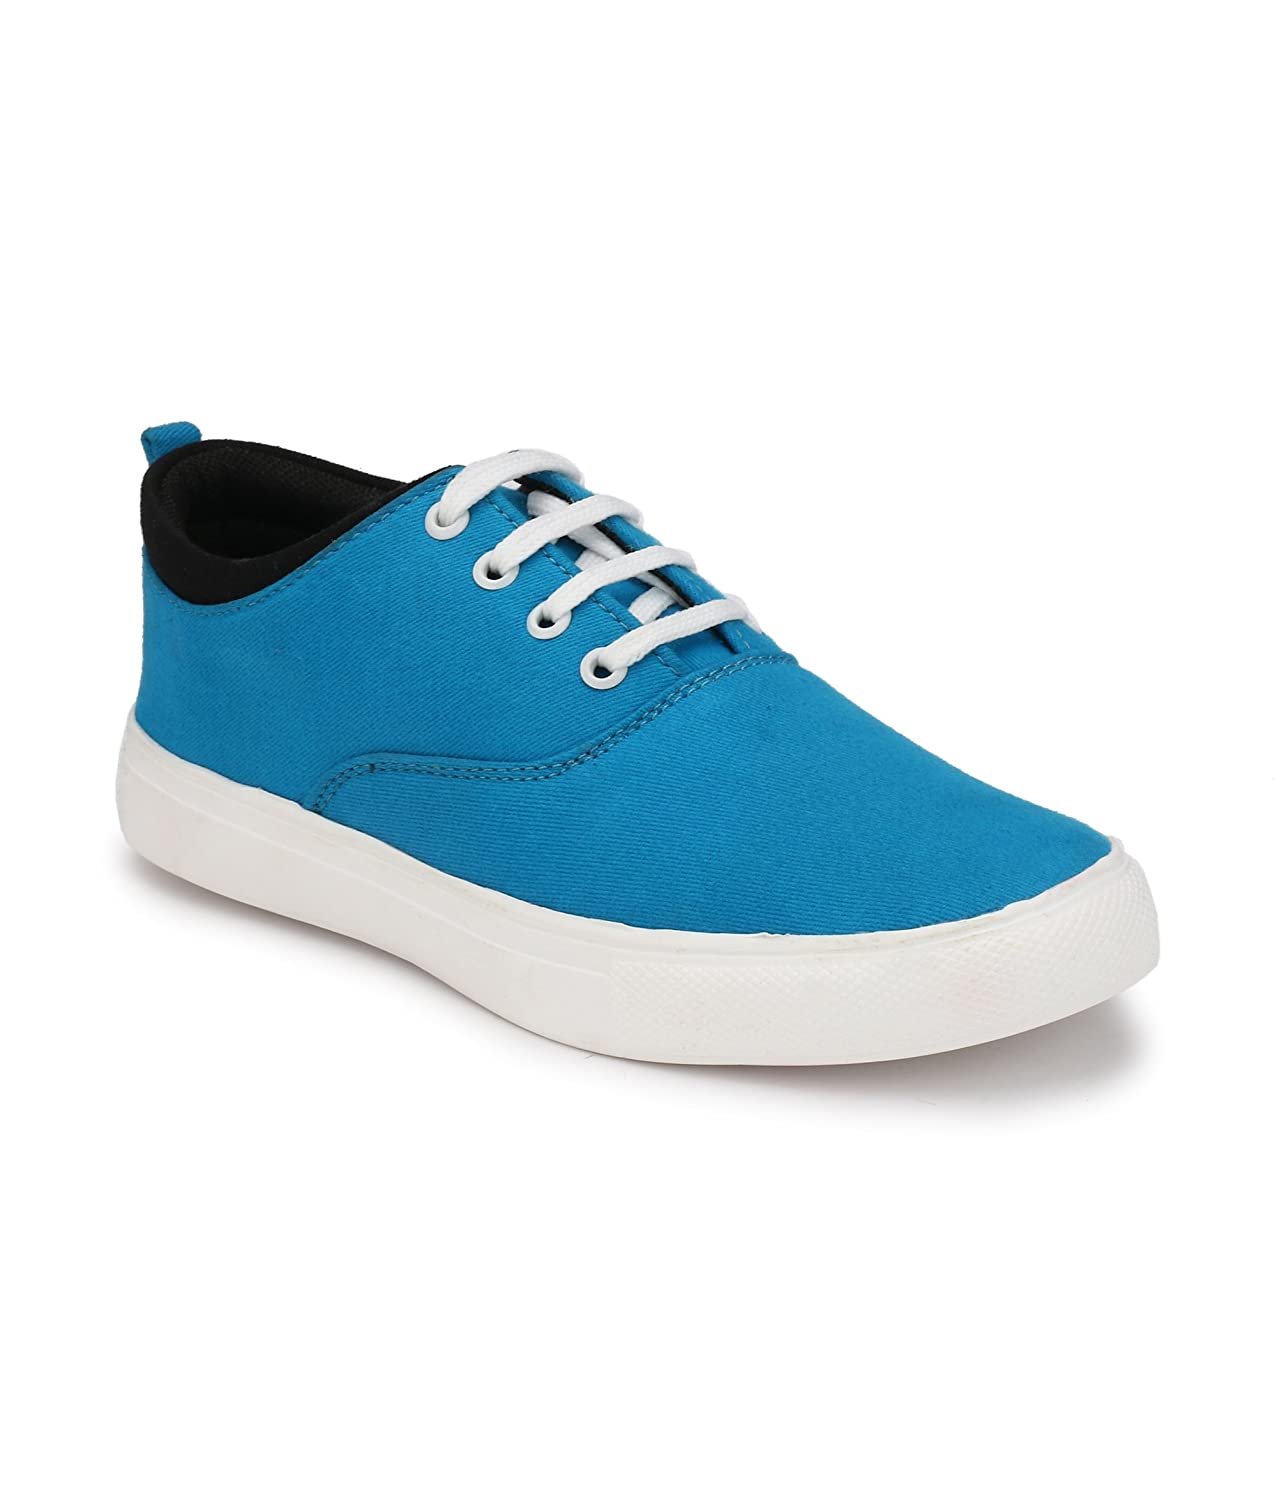 Sky Blue Shoes, Casual Shoes for Boys